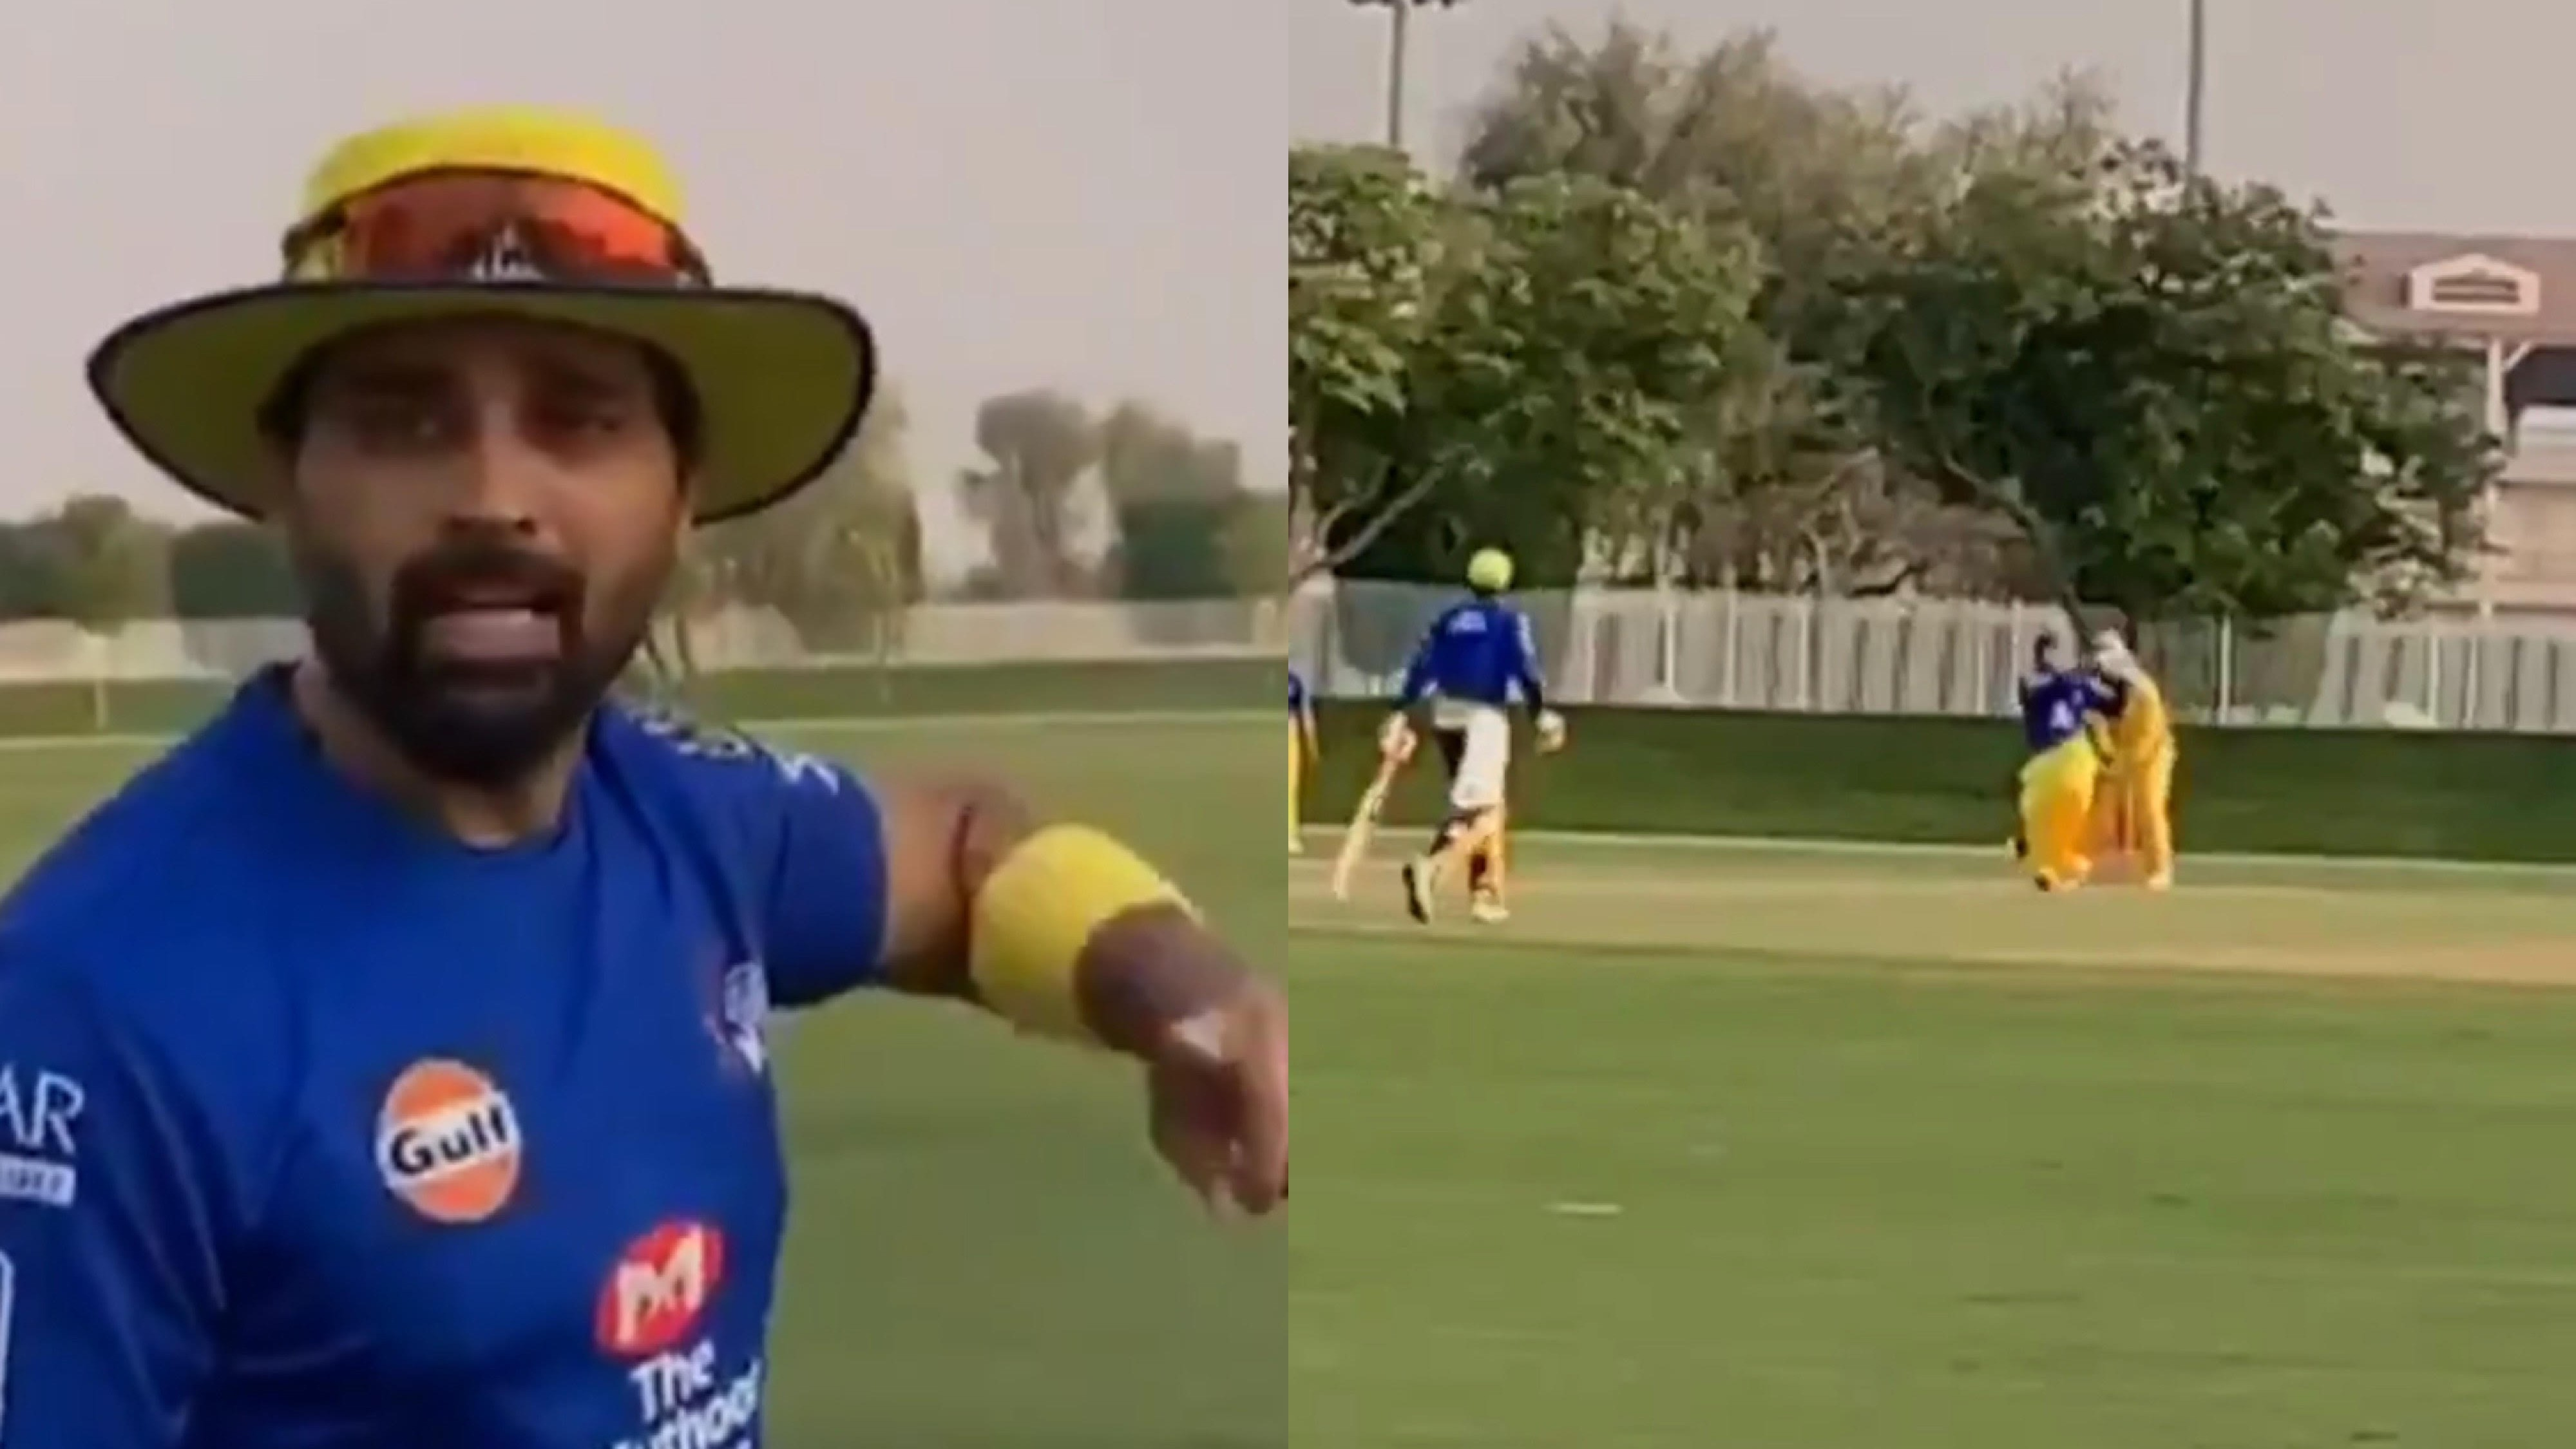 IPL 2020: WATCH - Murali Vijay in awe as MS Dhoni smashes ball out of the park